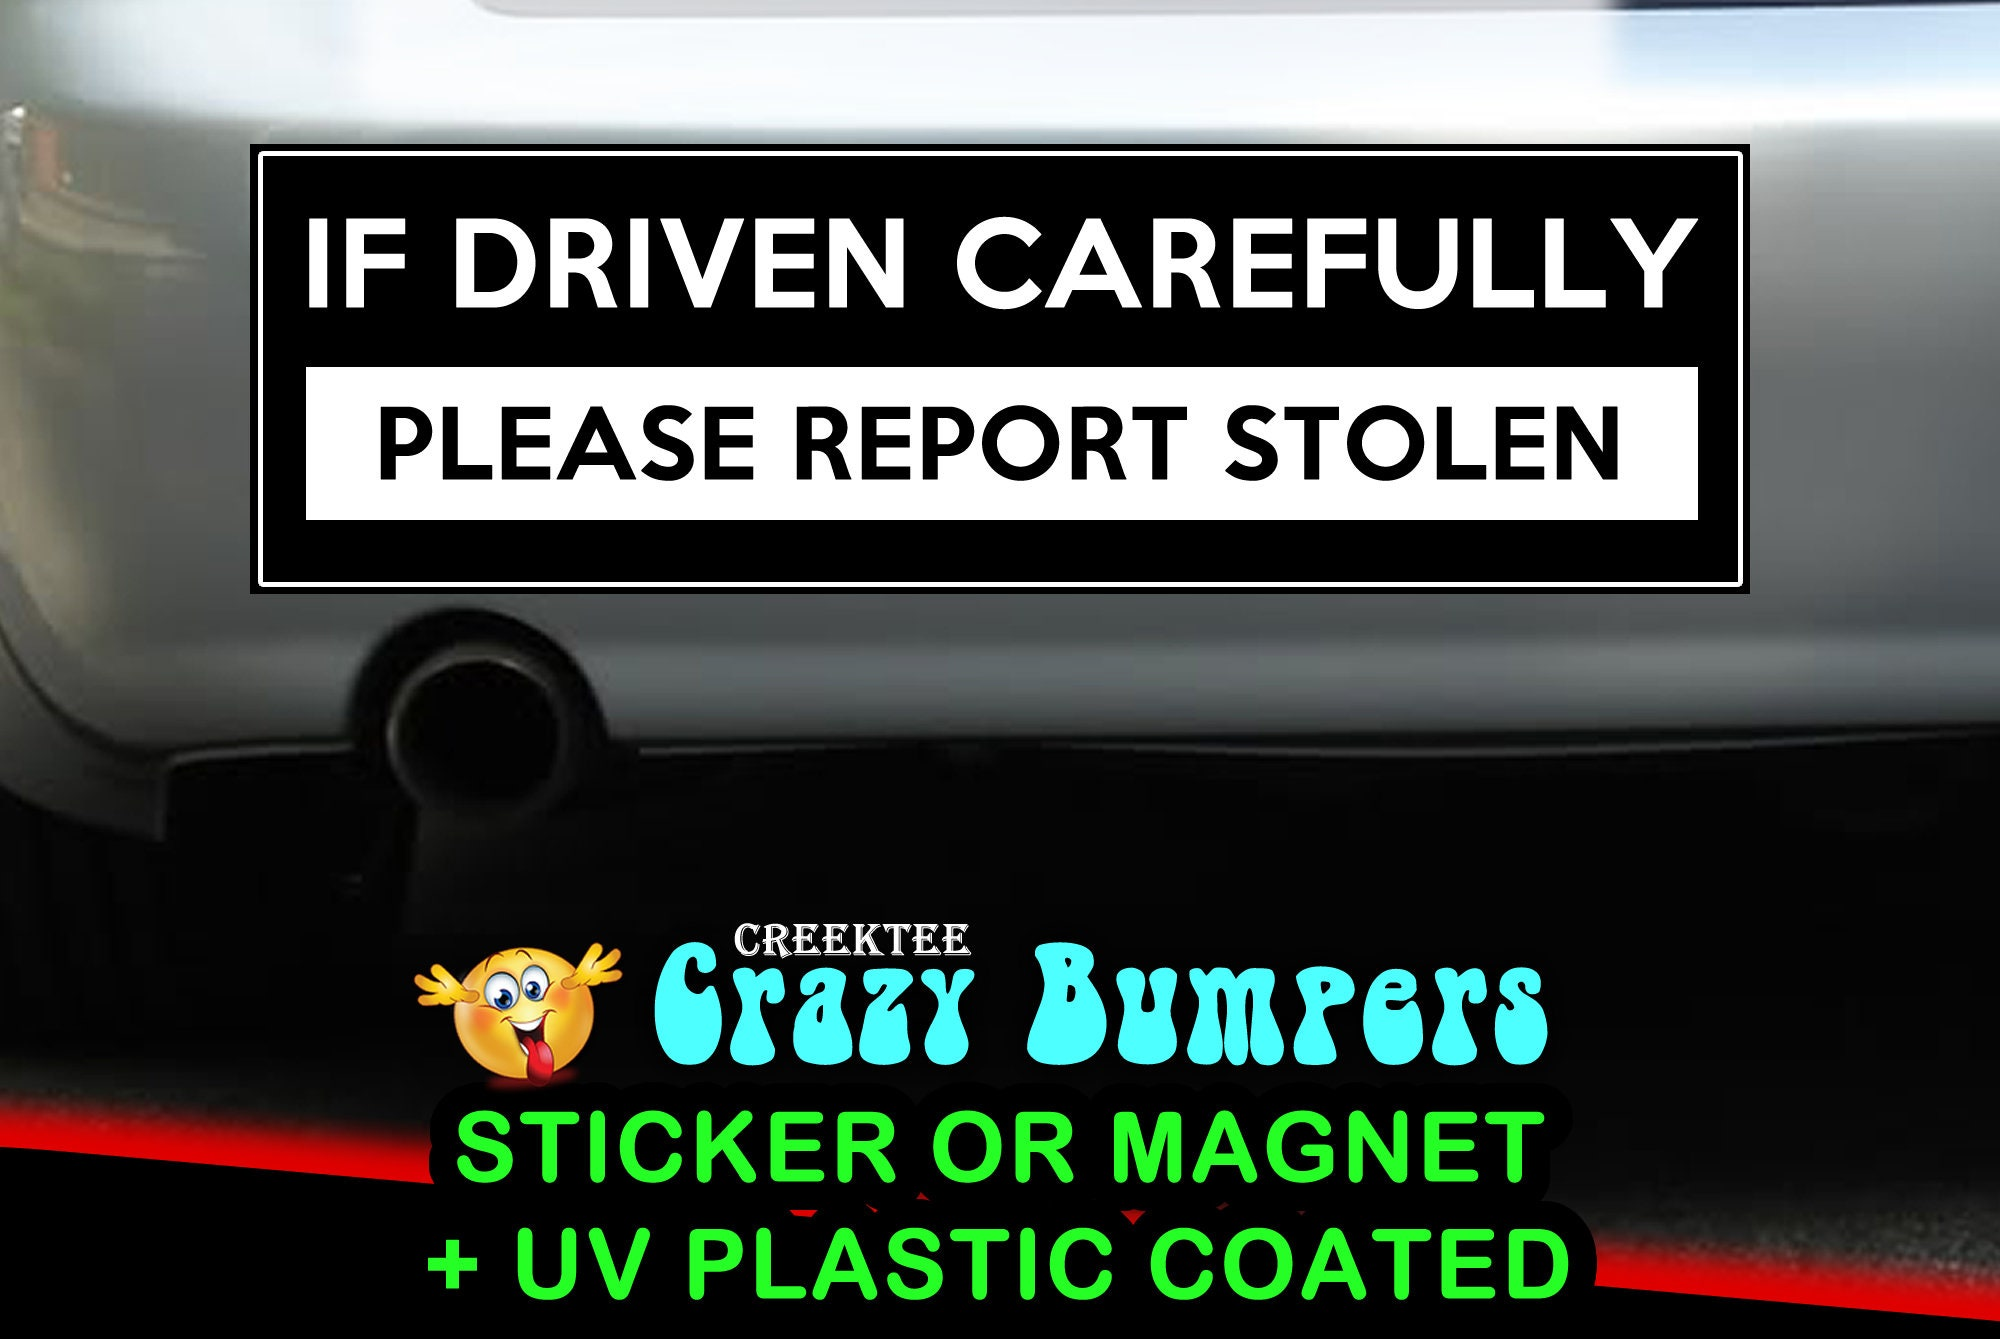 If Driven Carefully Please Report Stolen 10 x 3 Bumper Sticker or Magnetic Bumper Sticker Available